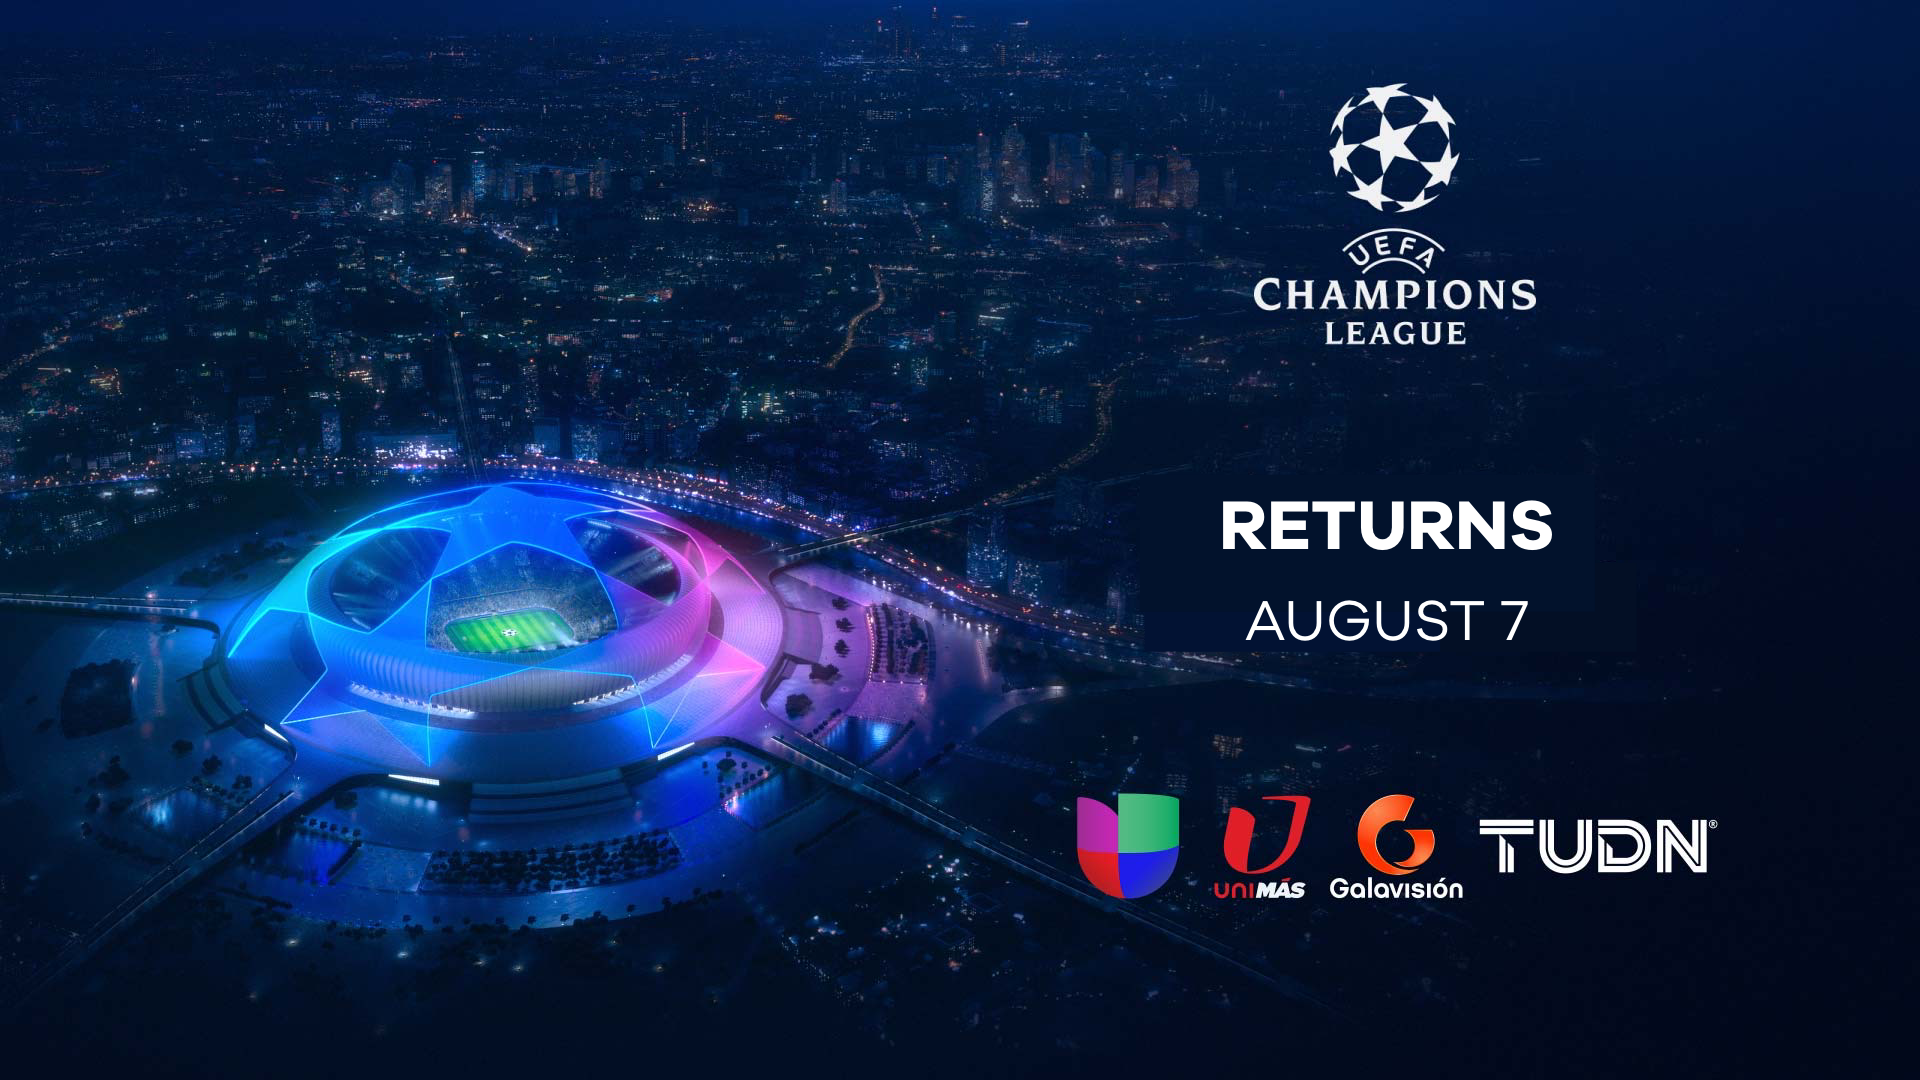 univision s tudn to air resumption of 2019 20 uefa champions league on broadcast cable tv uefa champions league